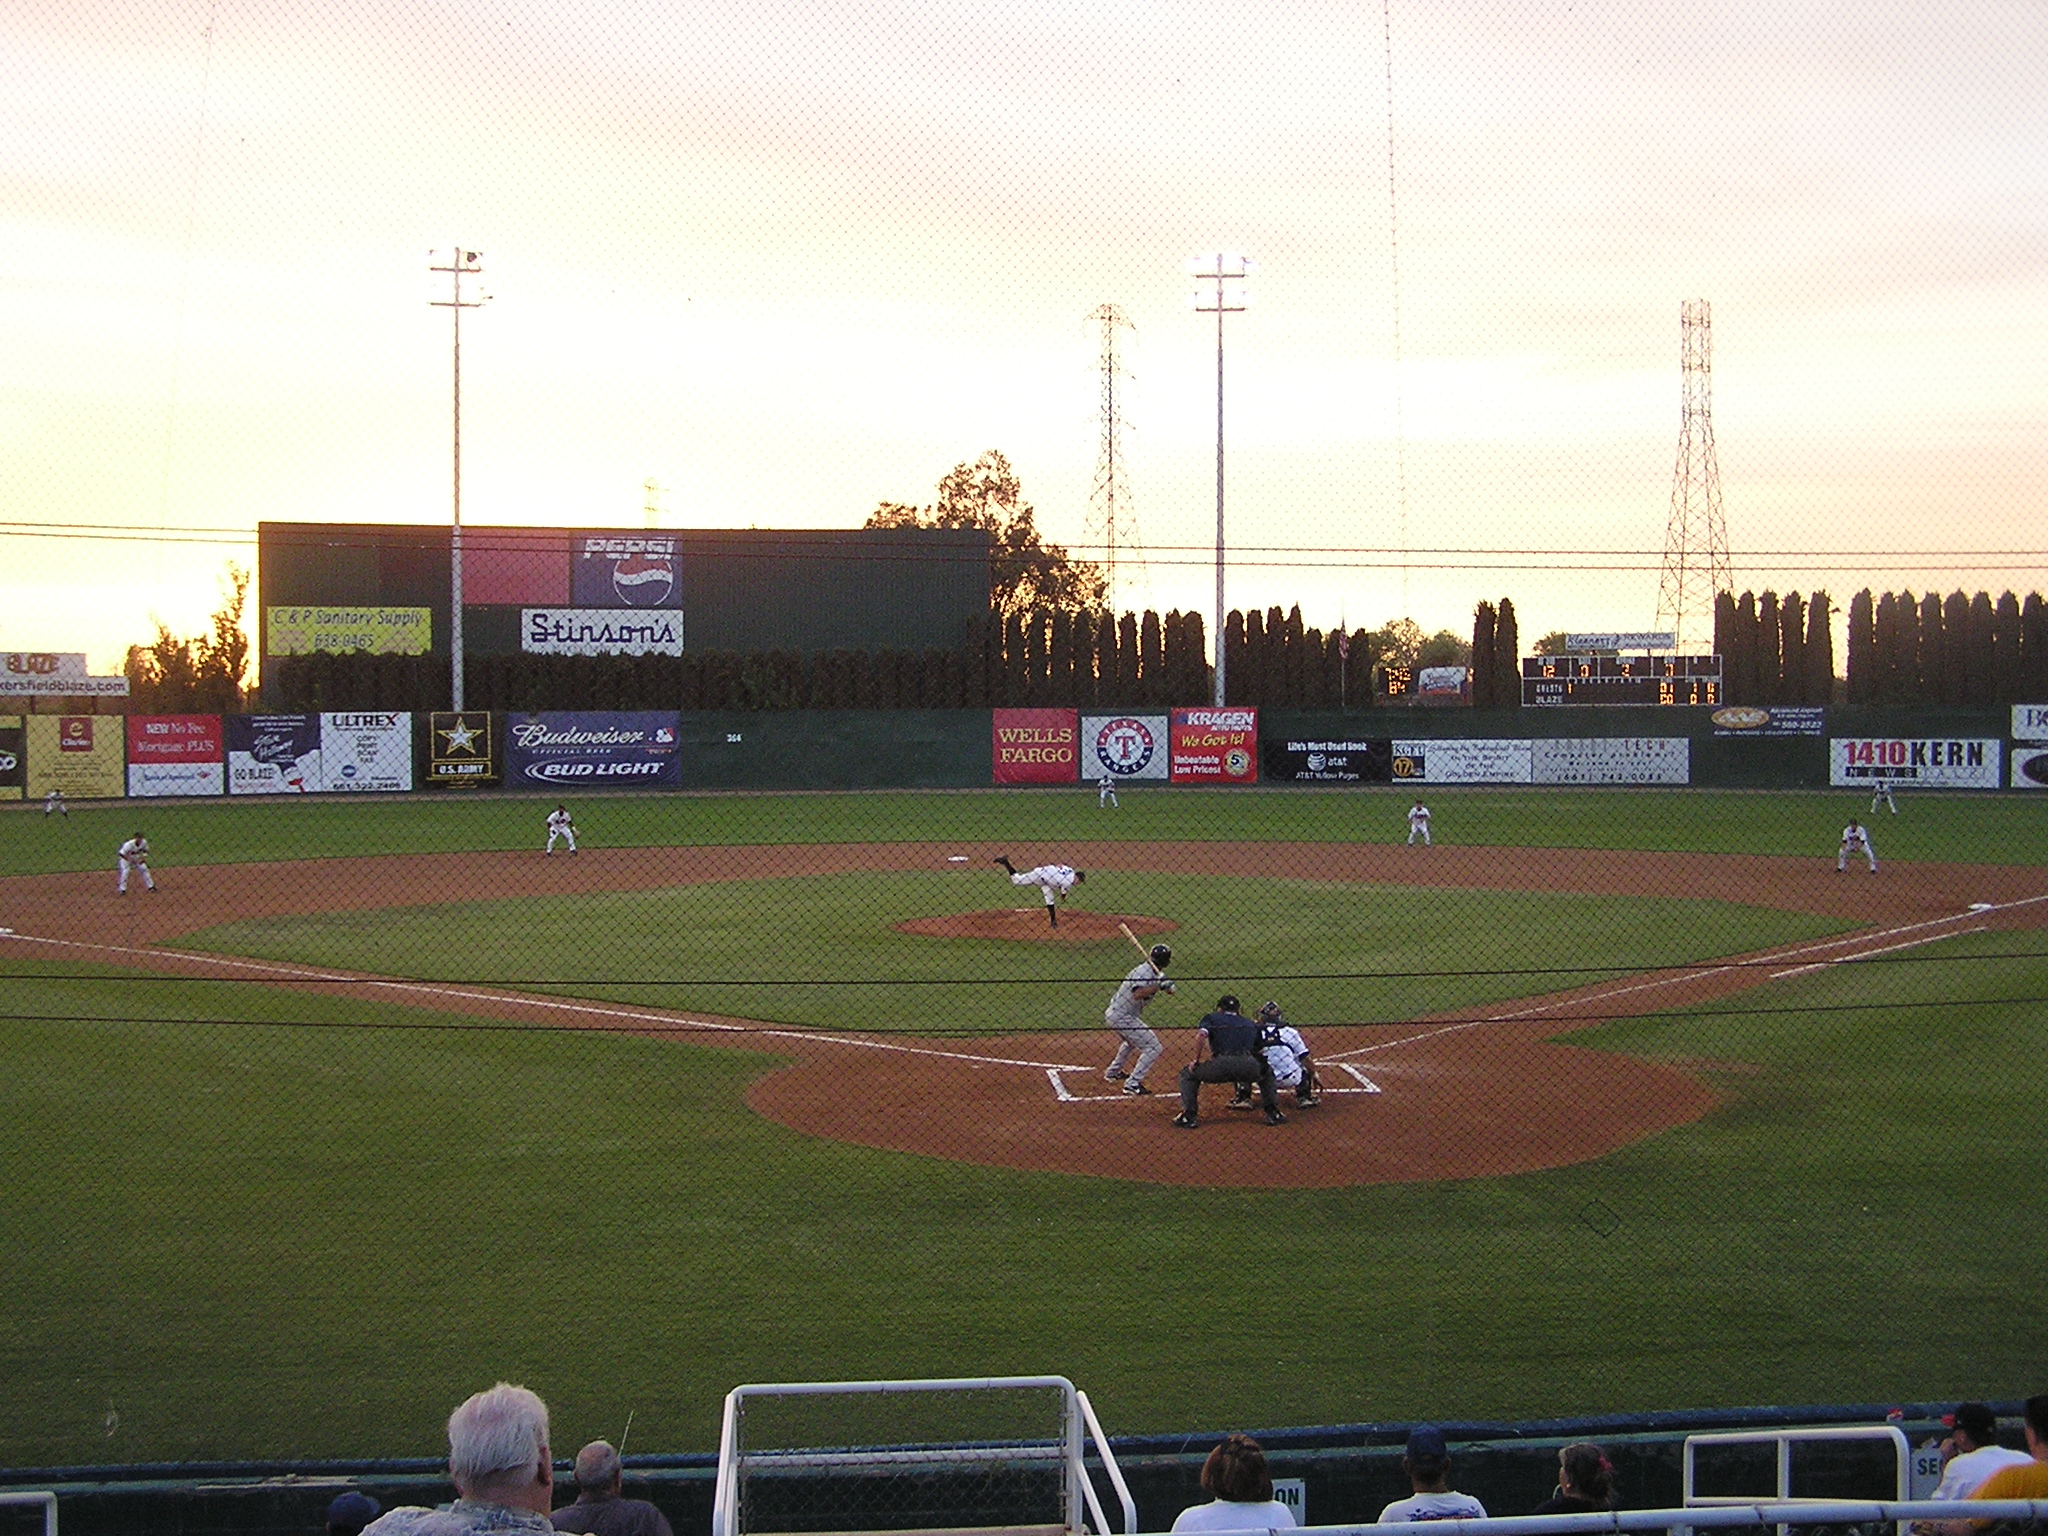 The Pitch - Sam Lynn Ballpark, Bakersfield, Ca.